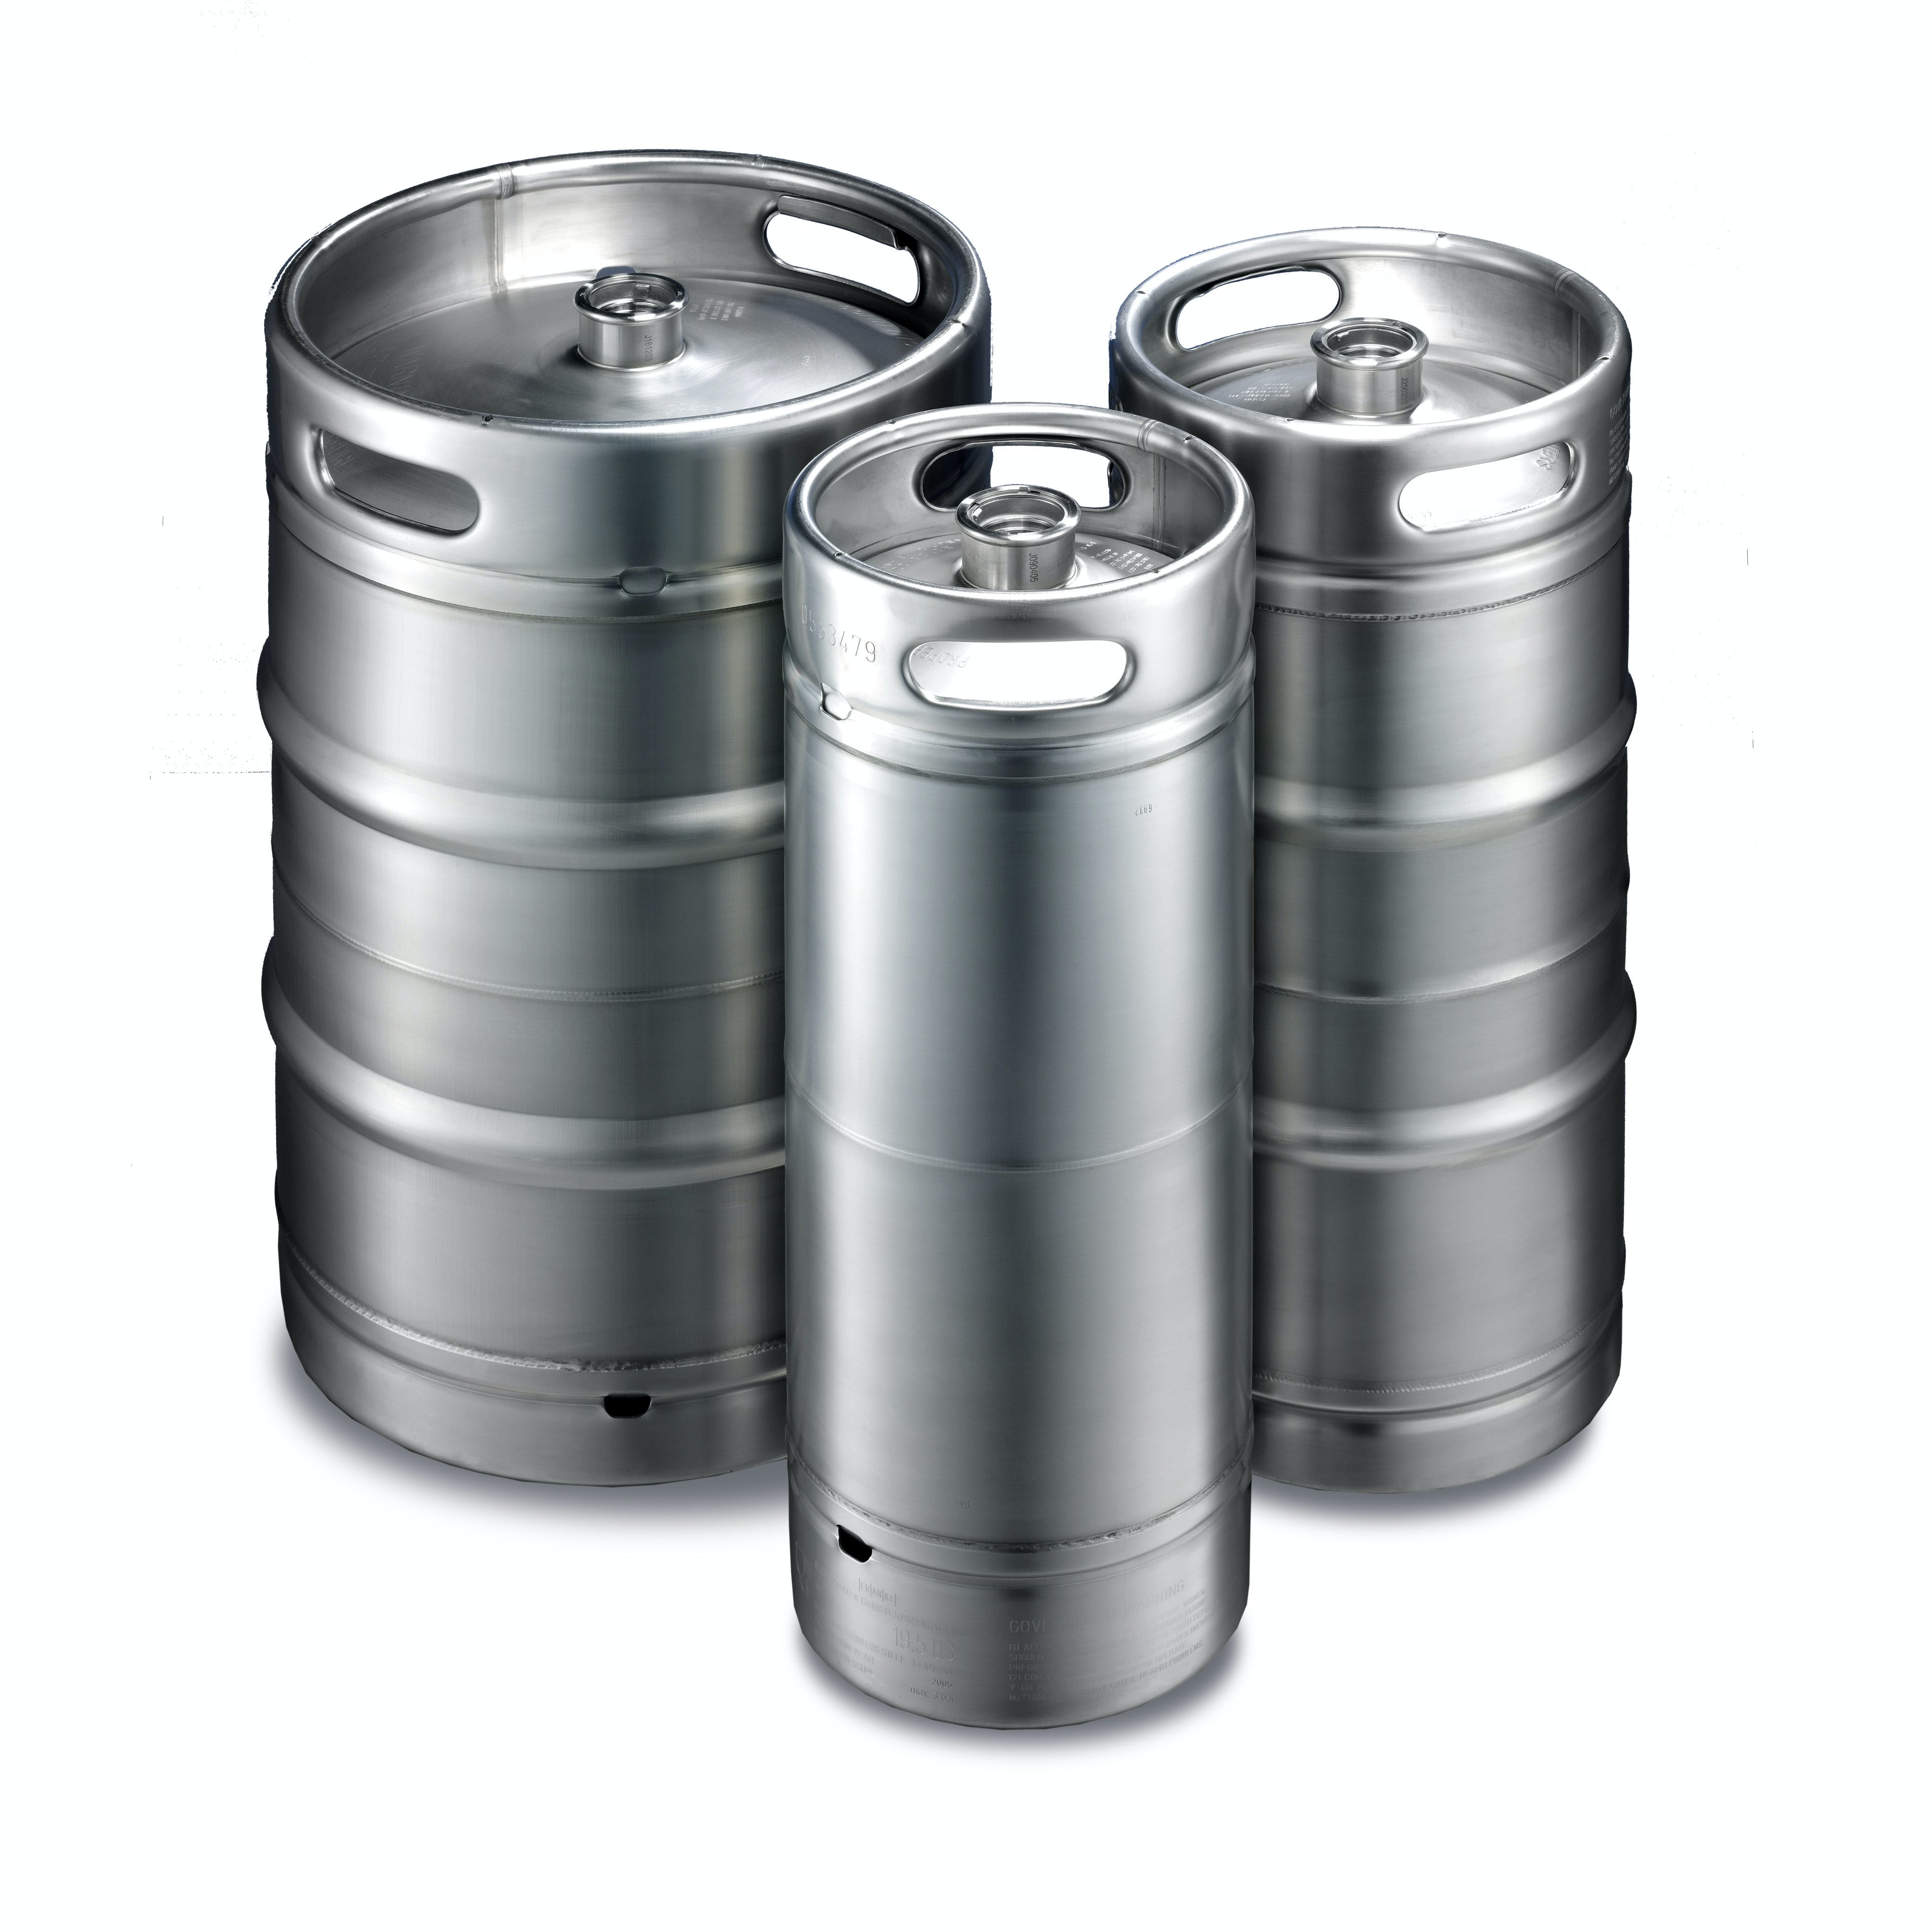 Blefa Stainless Steel Kegs Keg sold by BLEFA Kegs Inc.